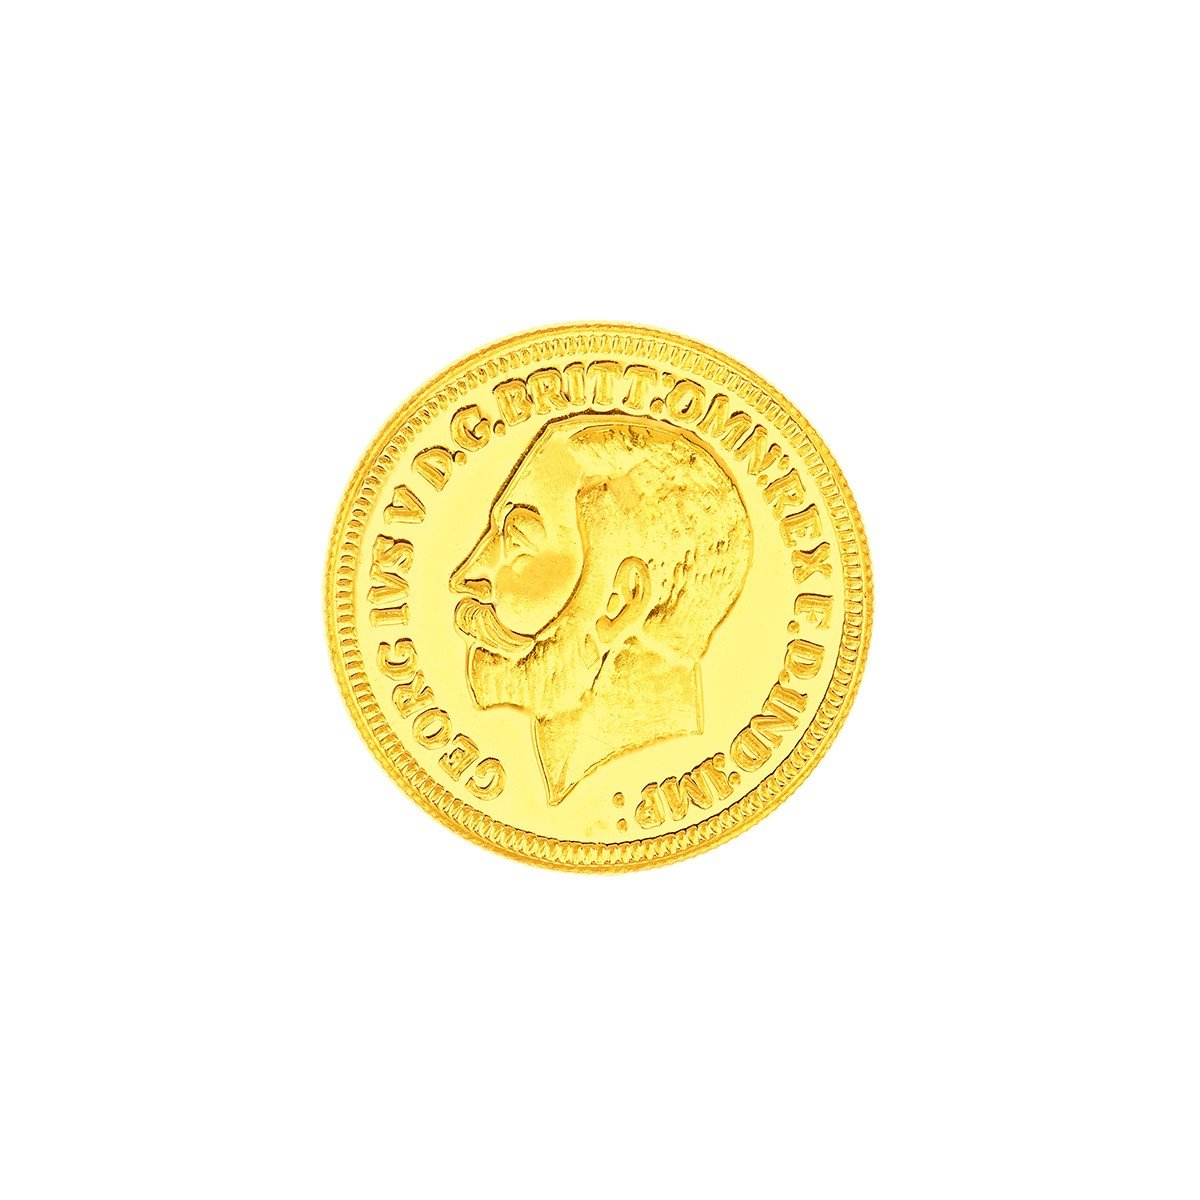 1 Gram 22 Carat King George Gold Coin